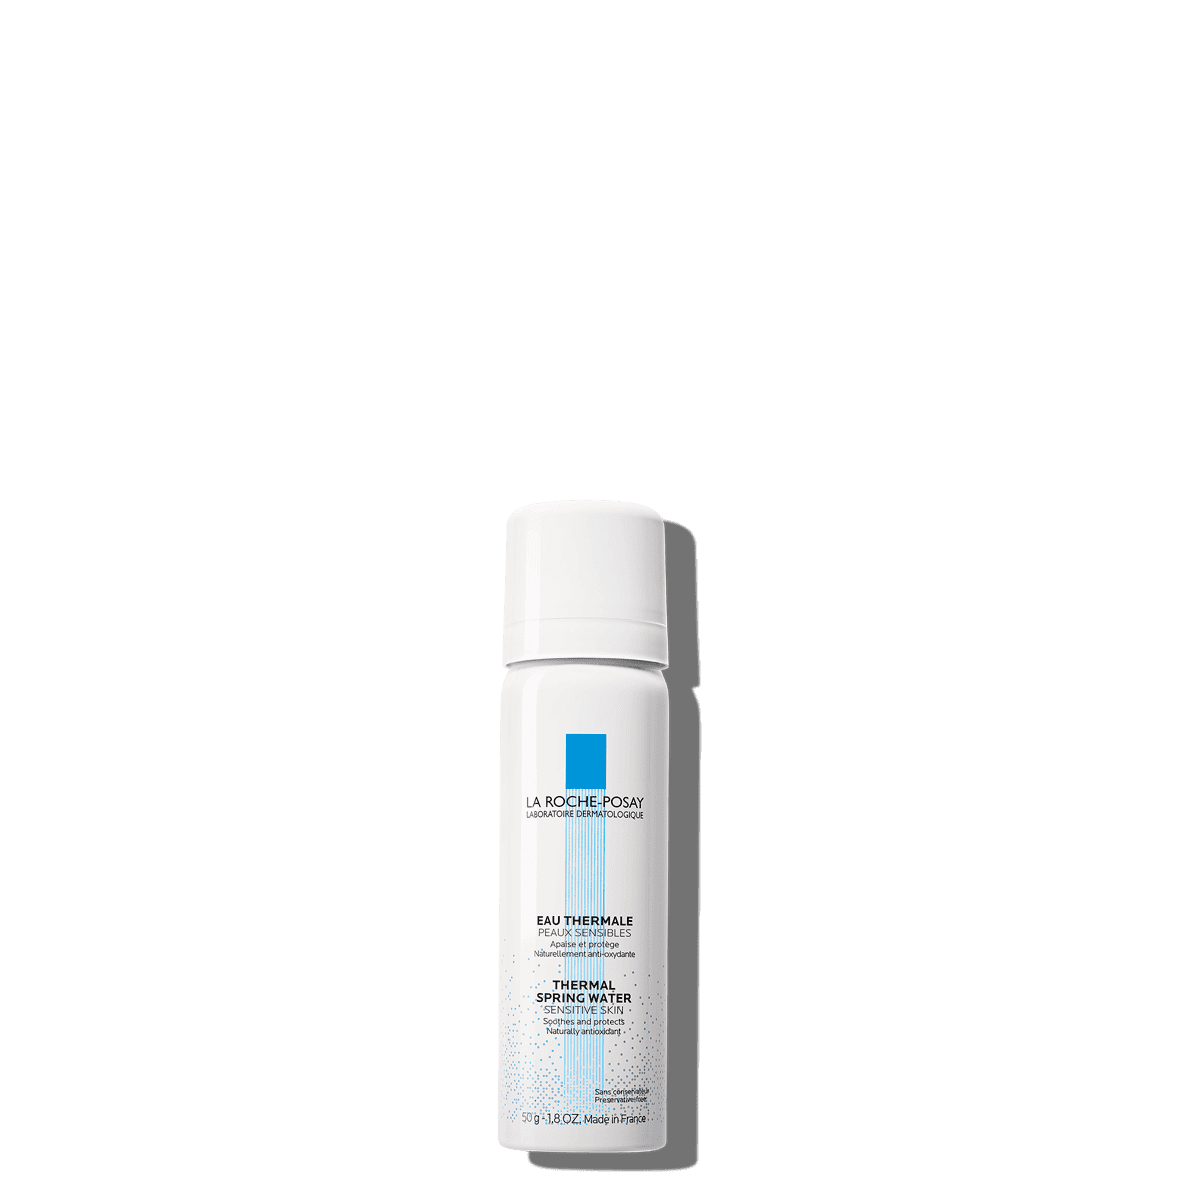 La Roche Posay ProductPage Thermal Spring Water 50ml 3433422403765 Fro